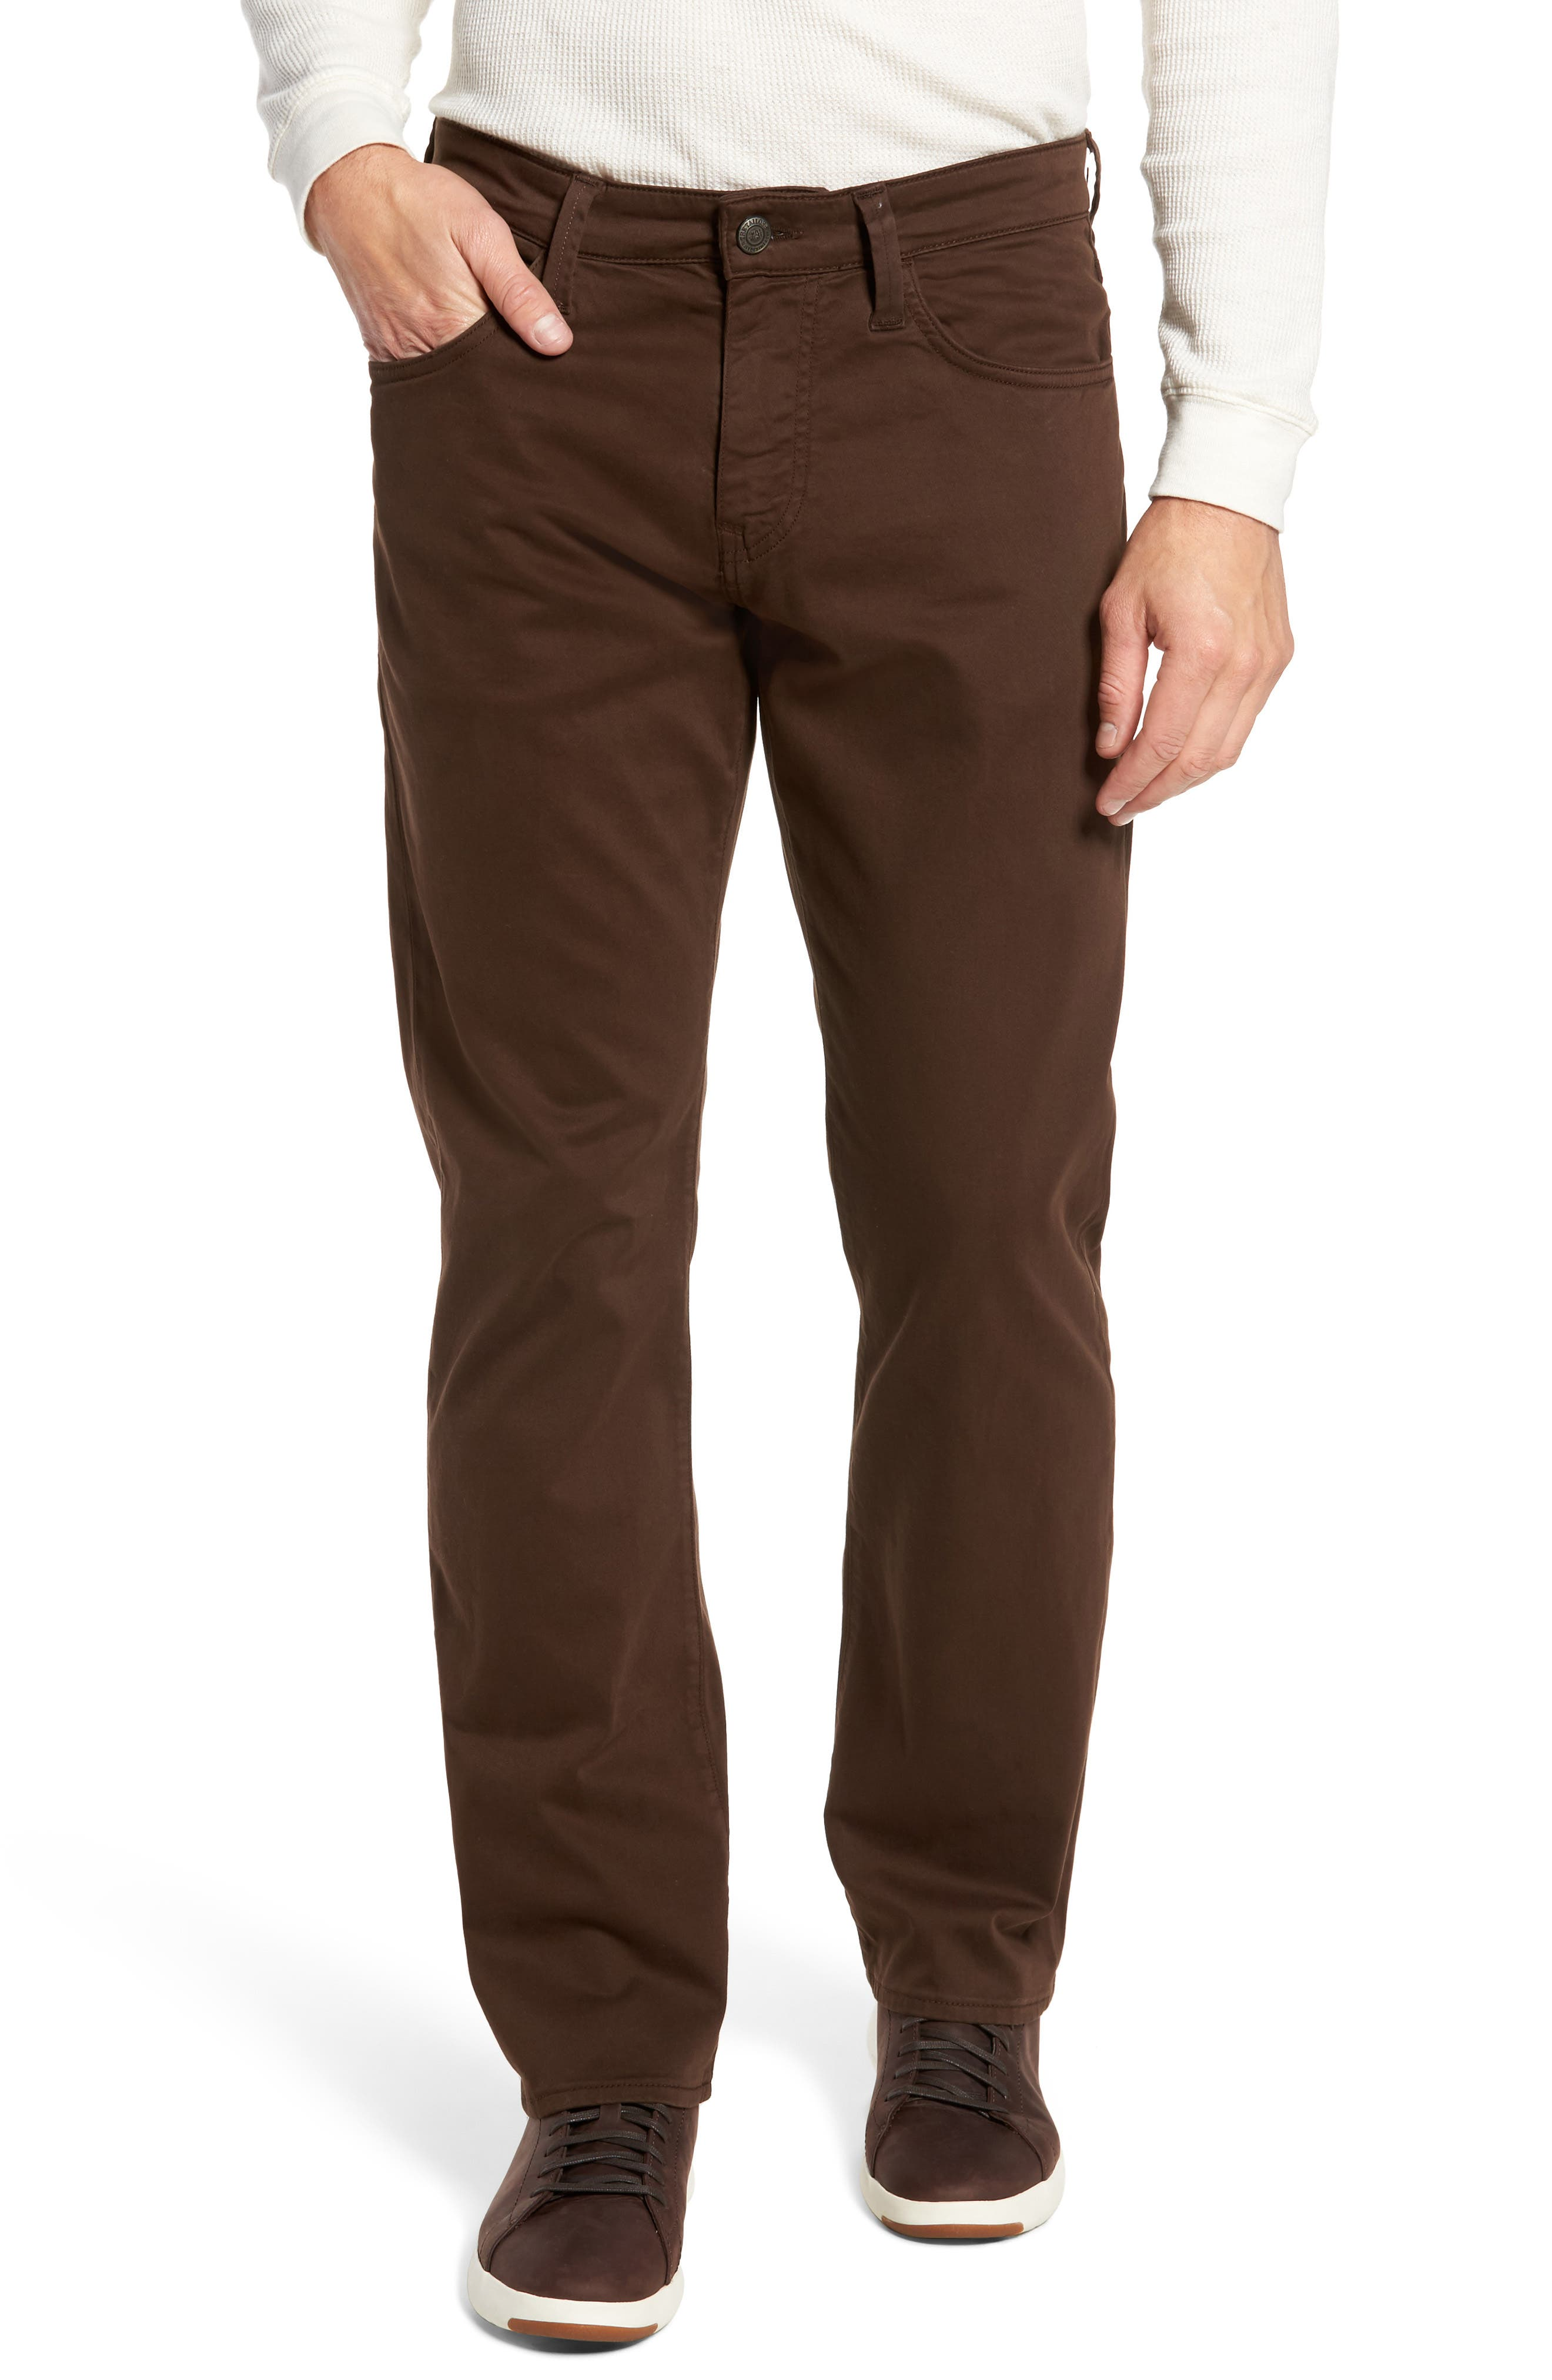 Matt Relaxed Fit Jeans,                         Main,                         color, Coffee Bean Twill